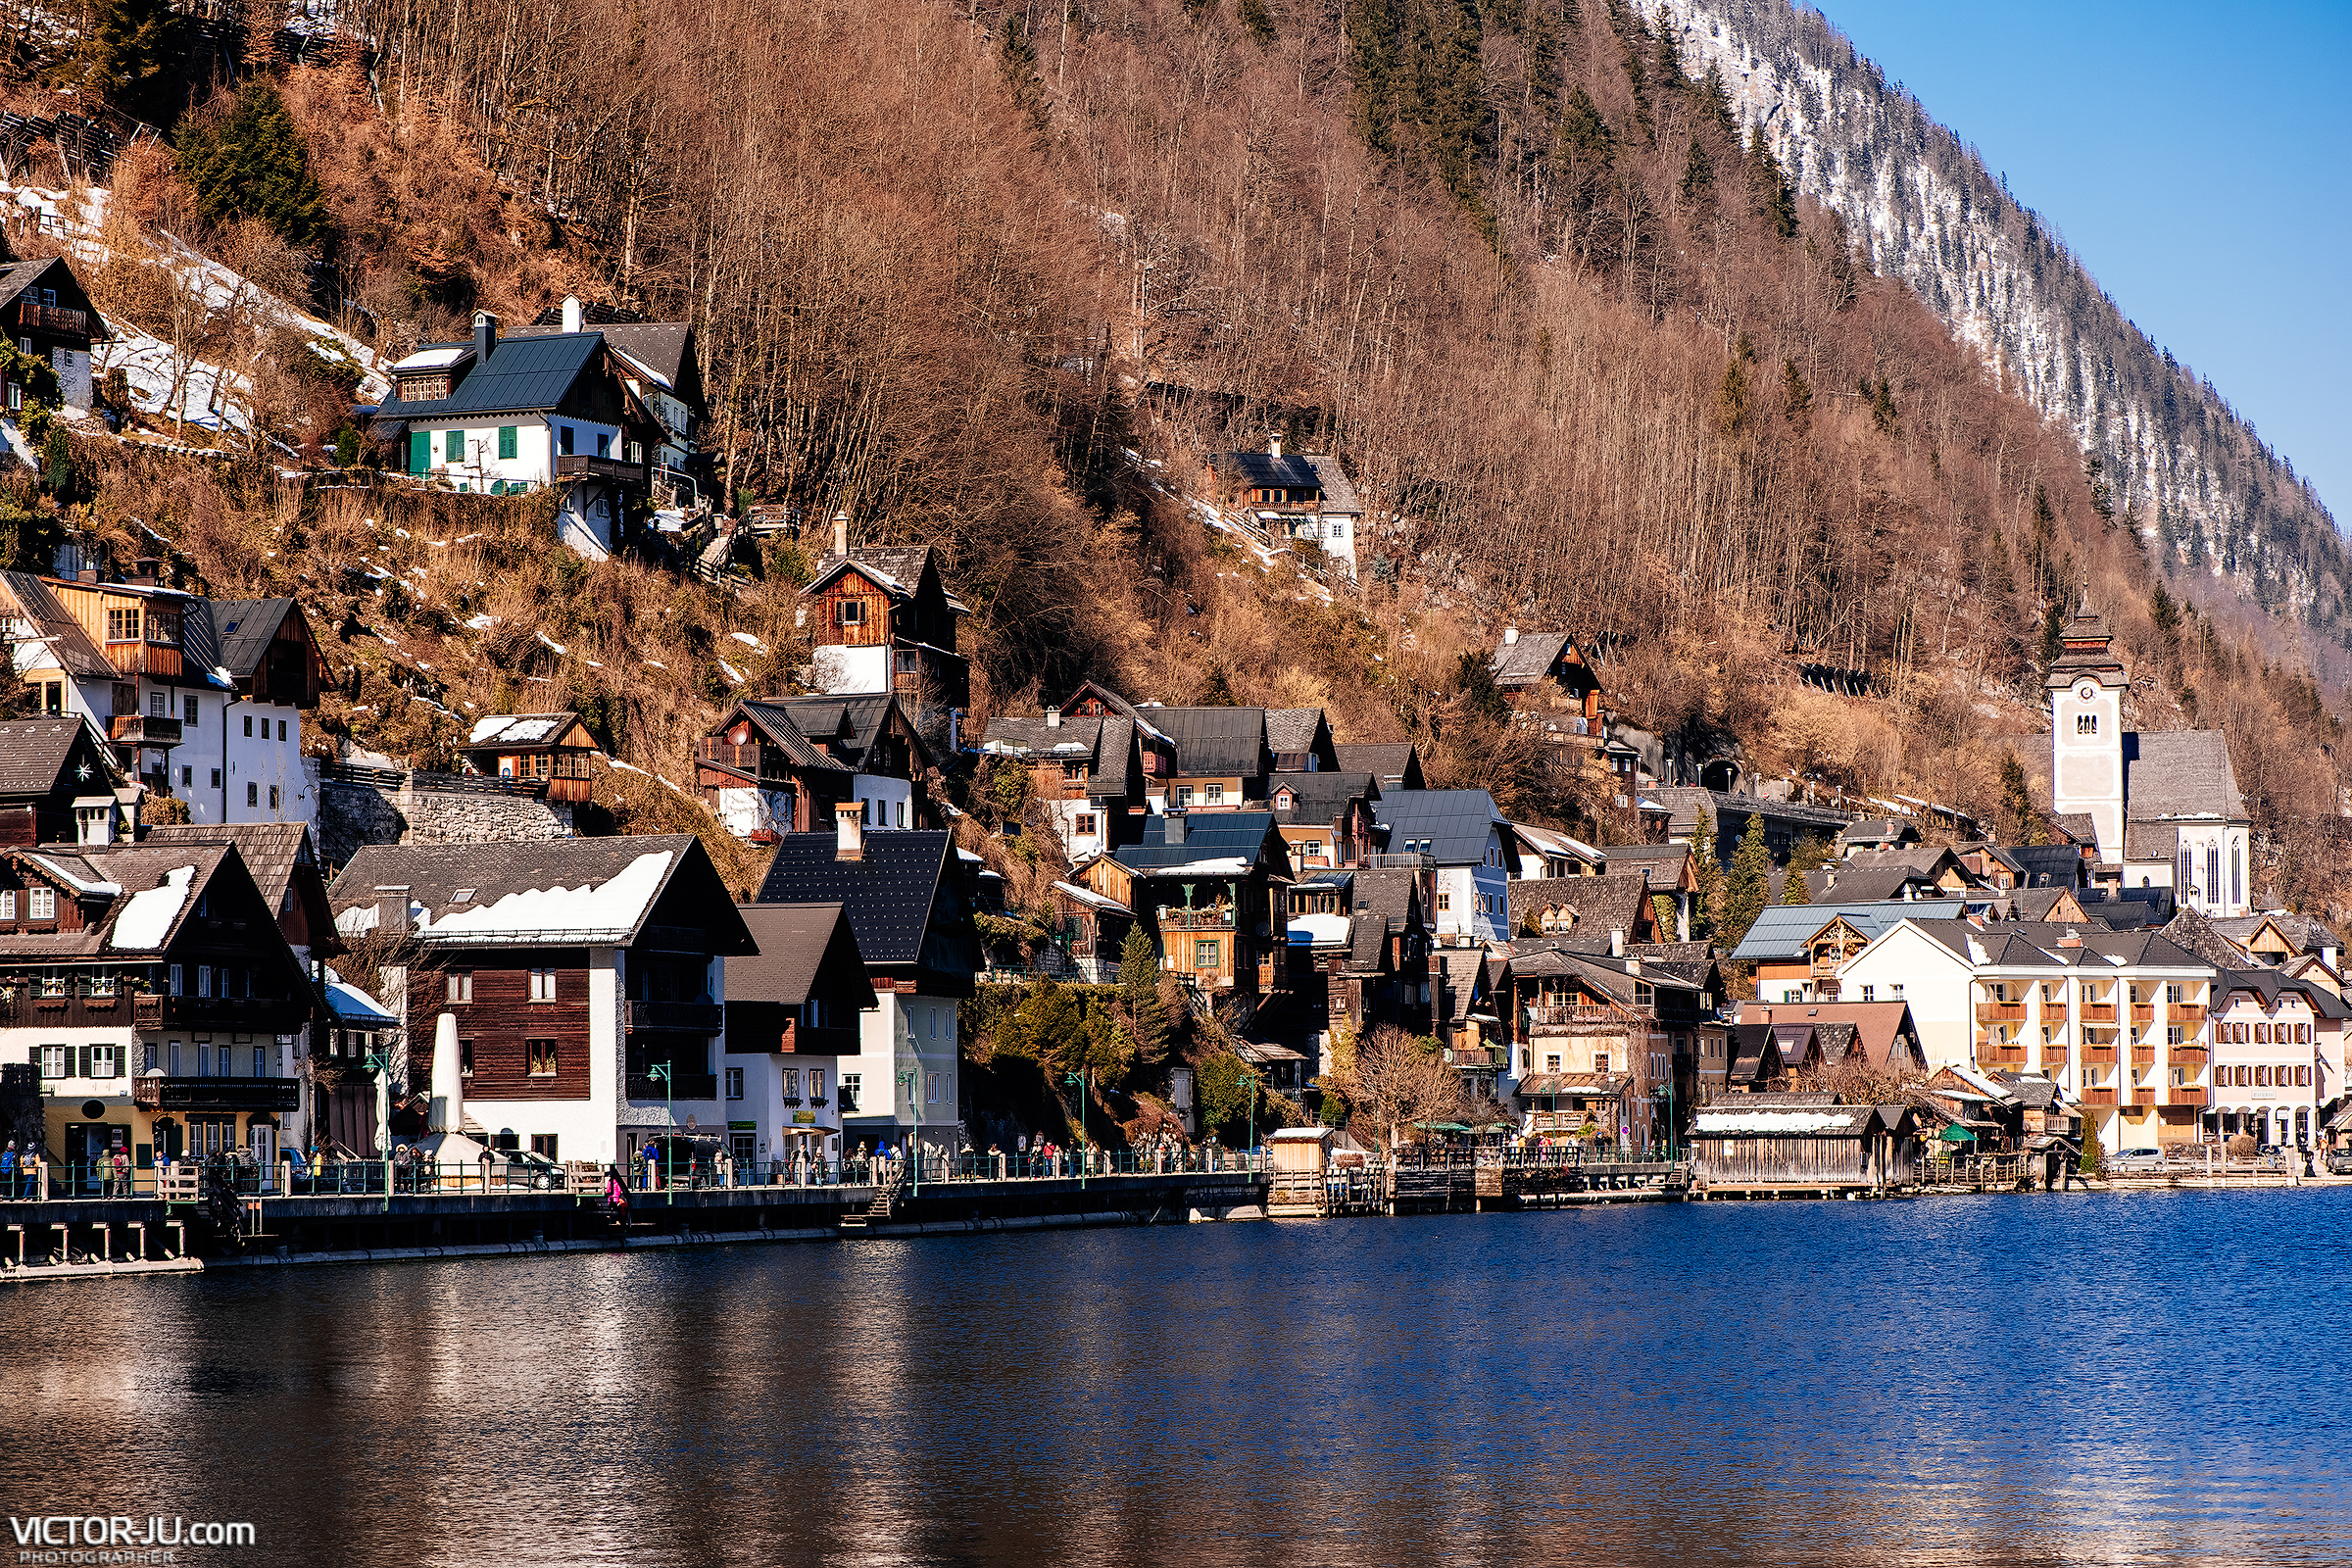 Photo Shoot in Hallstatt Austia